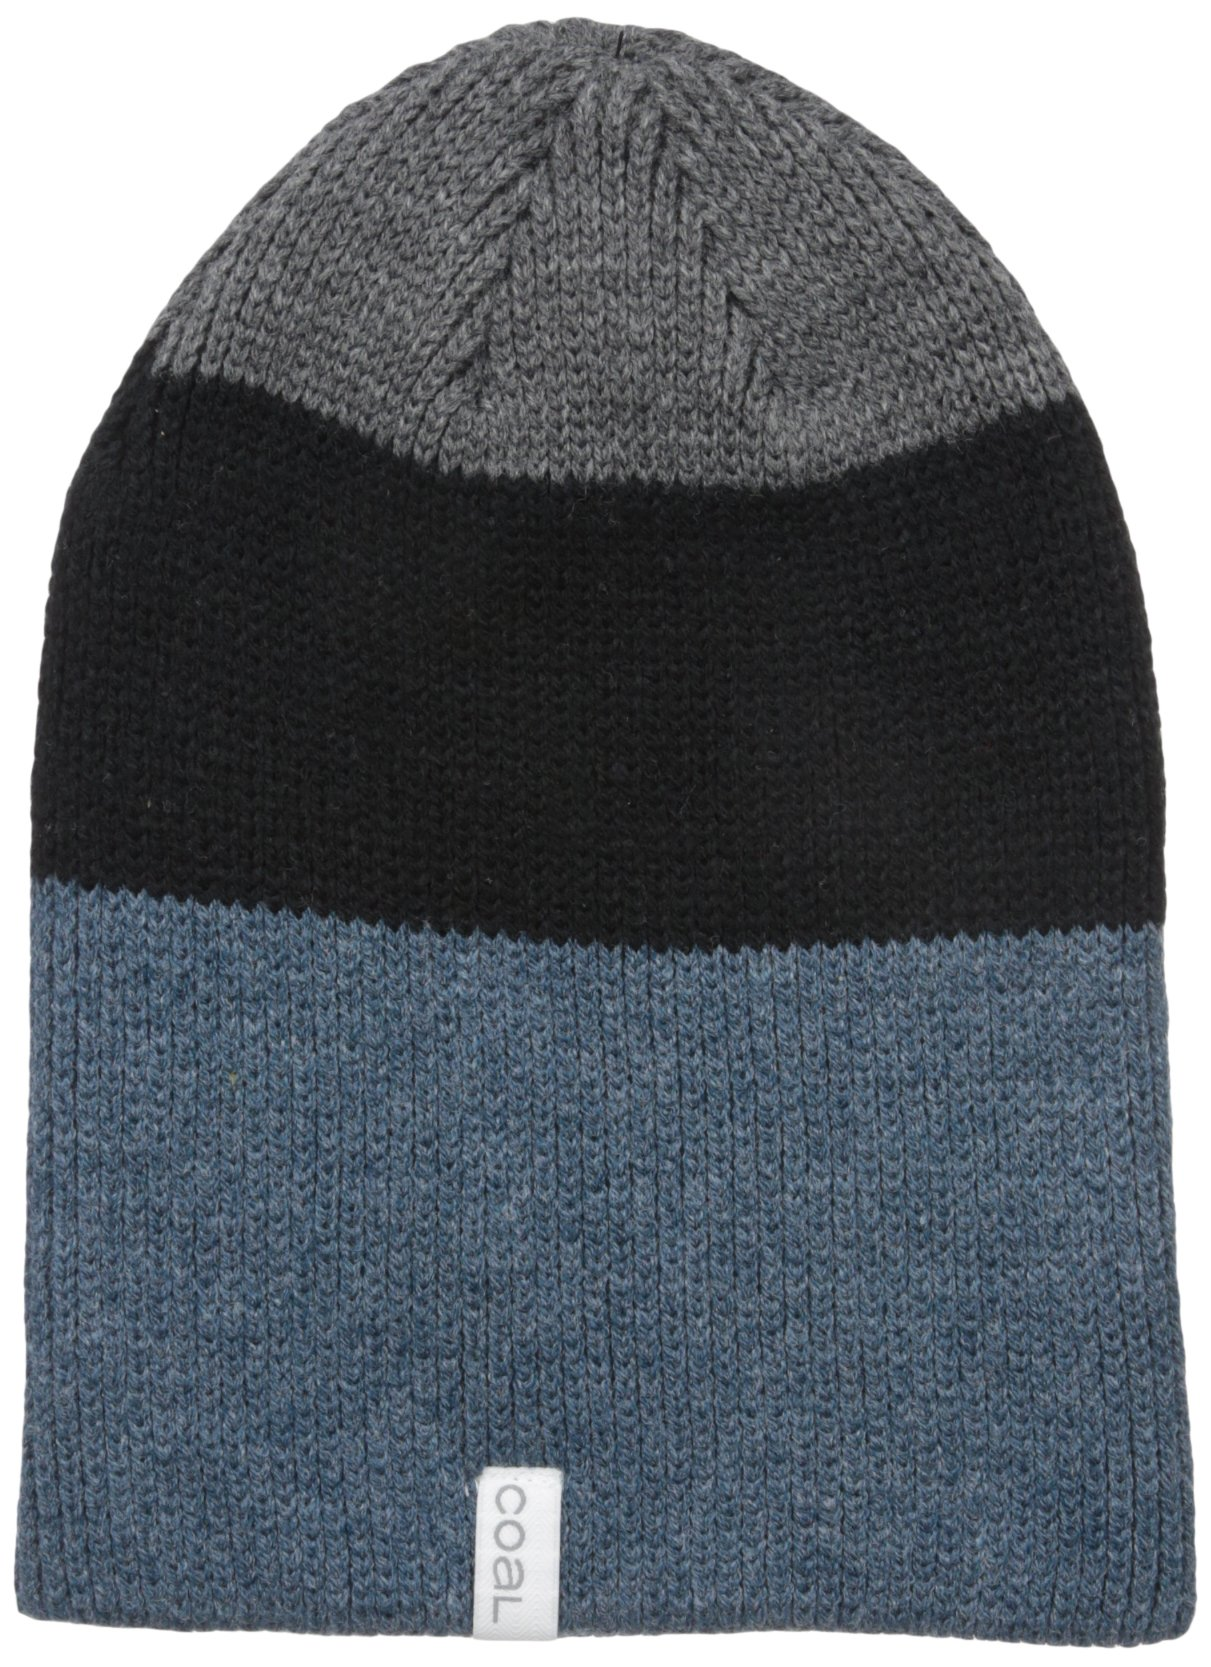 Coal Men's The Frena Solid Fine Knit Beanie Hat, Heather Slate, One Size